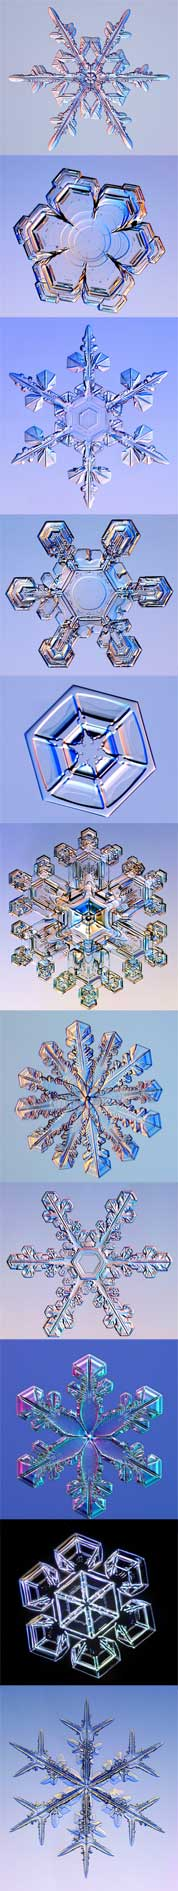 Photomicrographs of six different snow crystals.